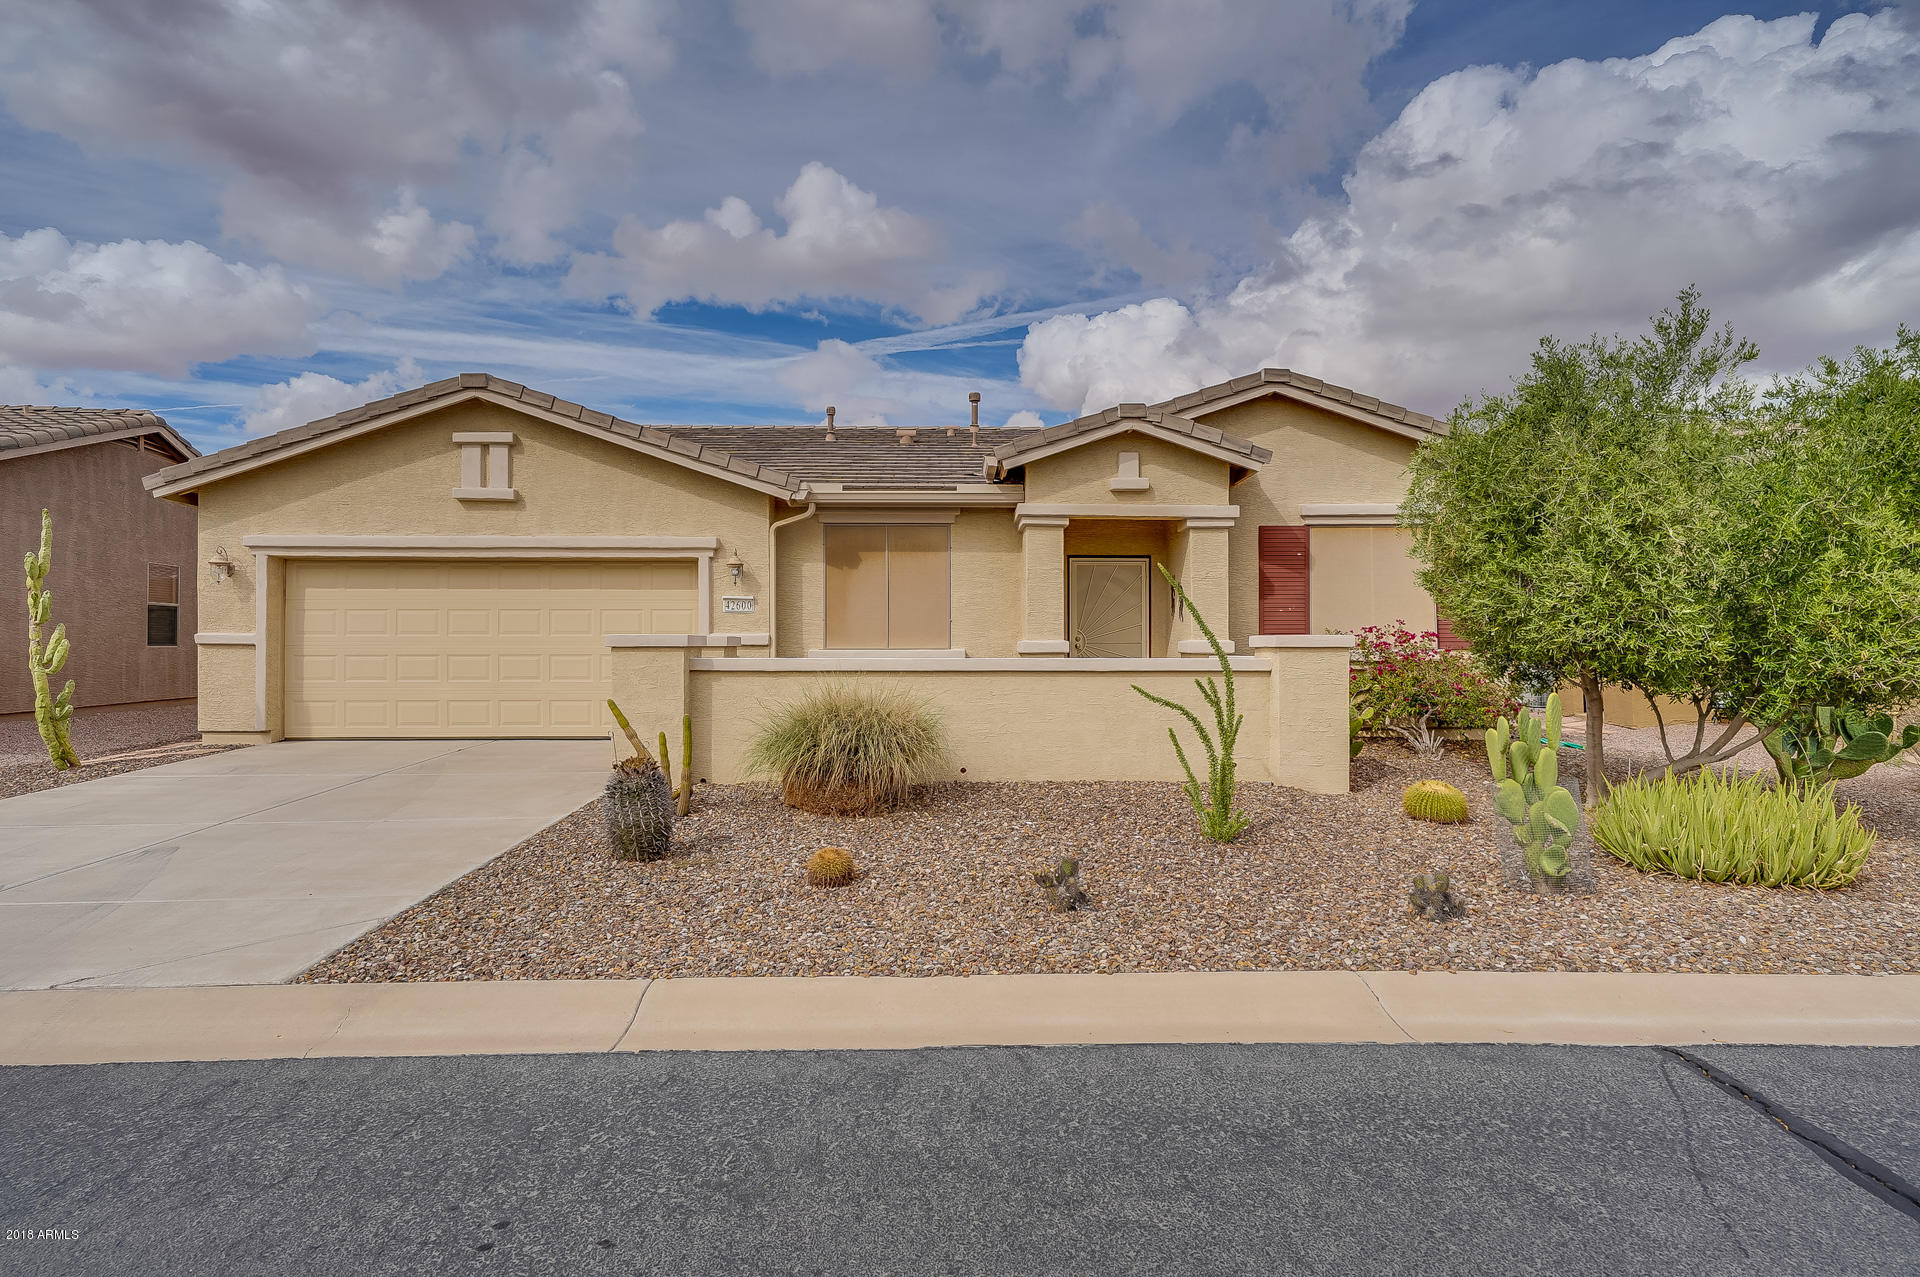 Photo for 42600 W Milky Way, Maricopa, AZ 85138 (MLS # 5832648)